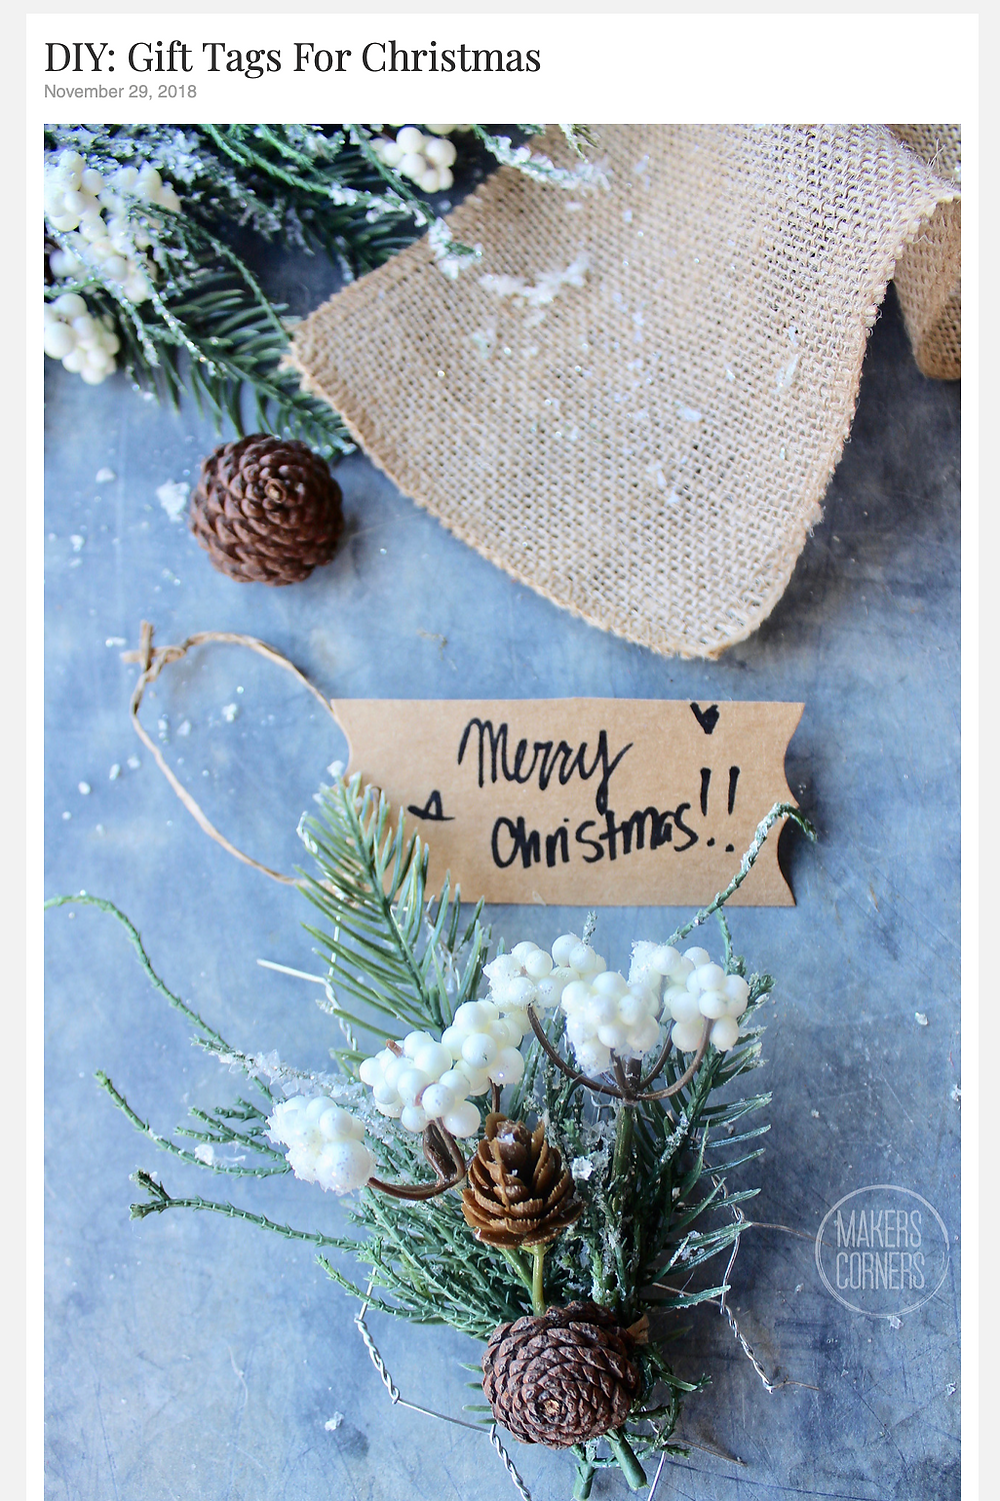 DIY Holiday Gift Tags